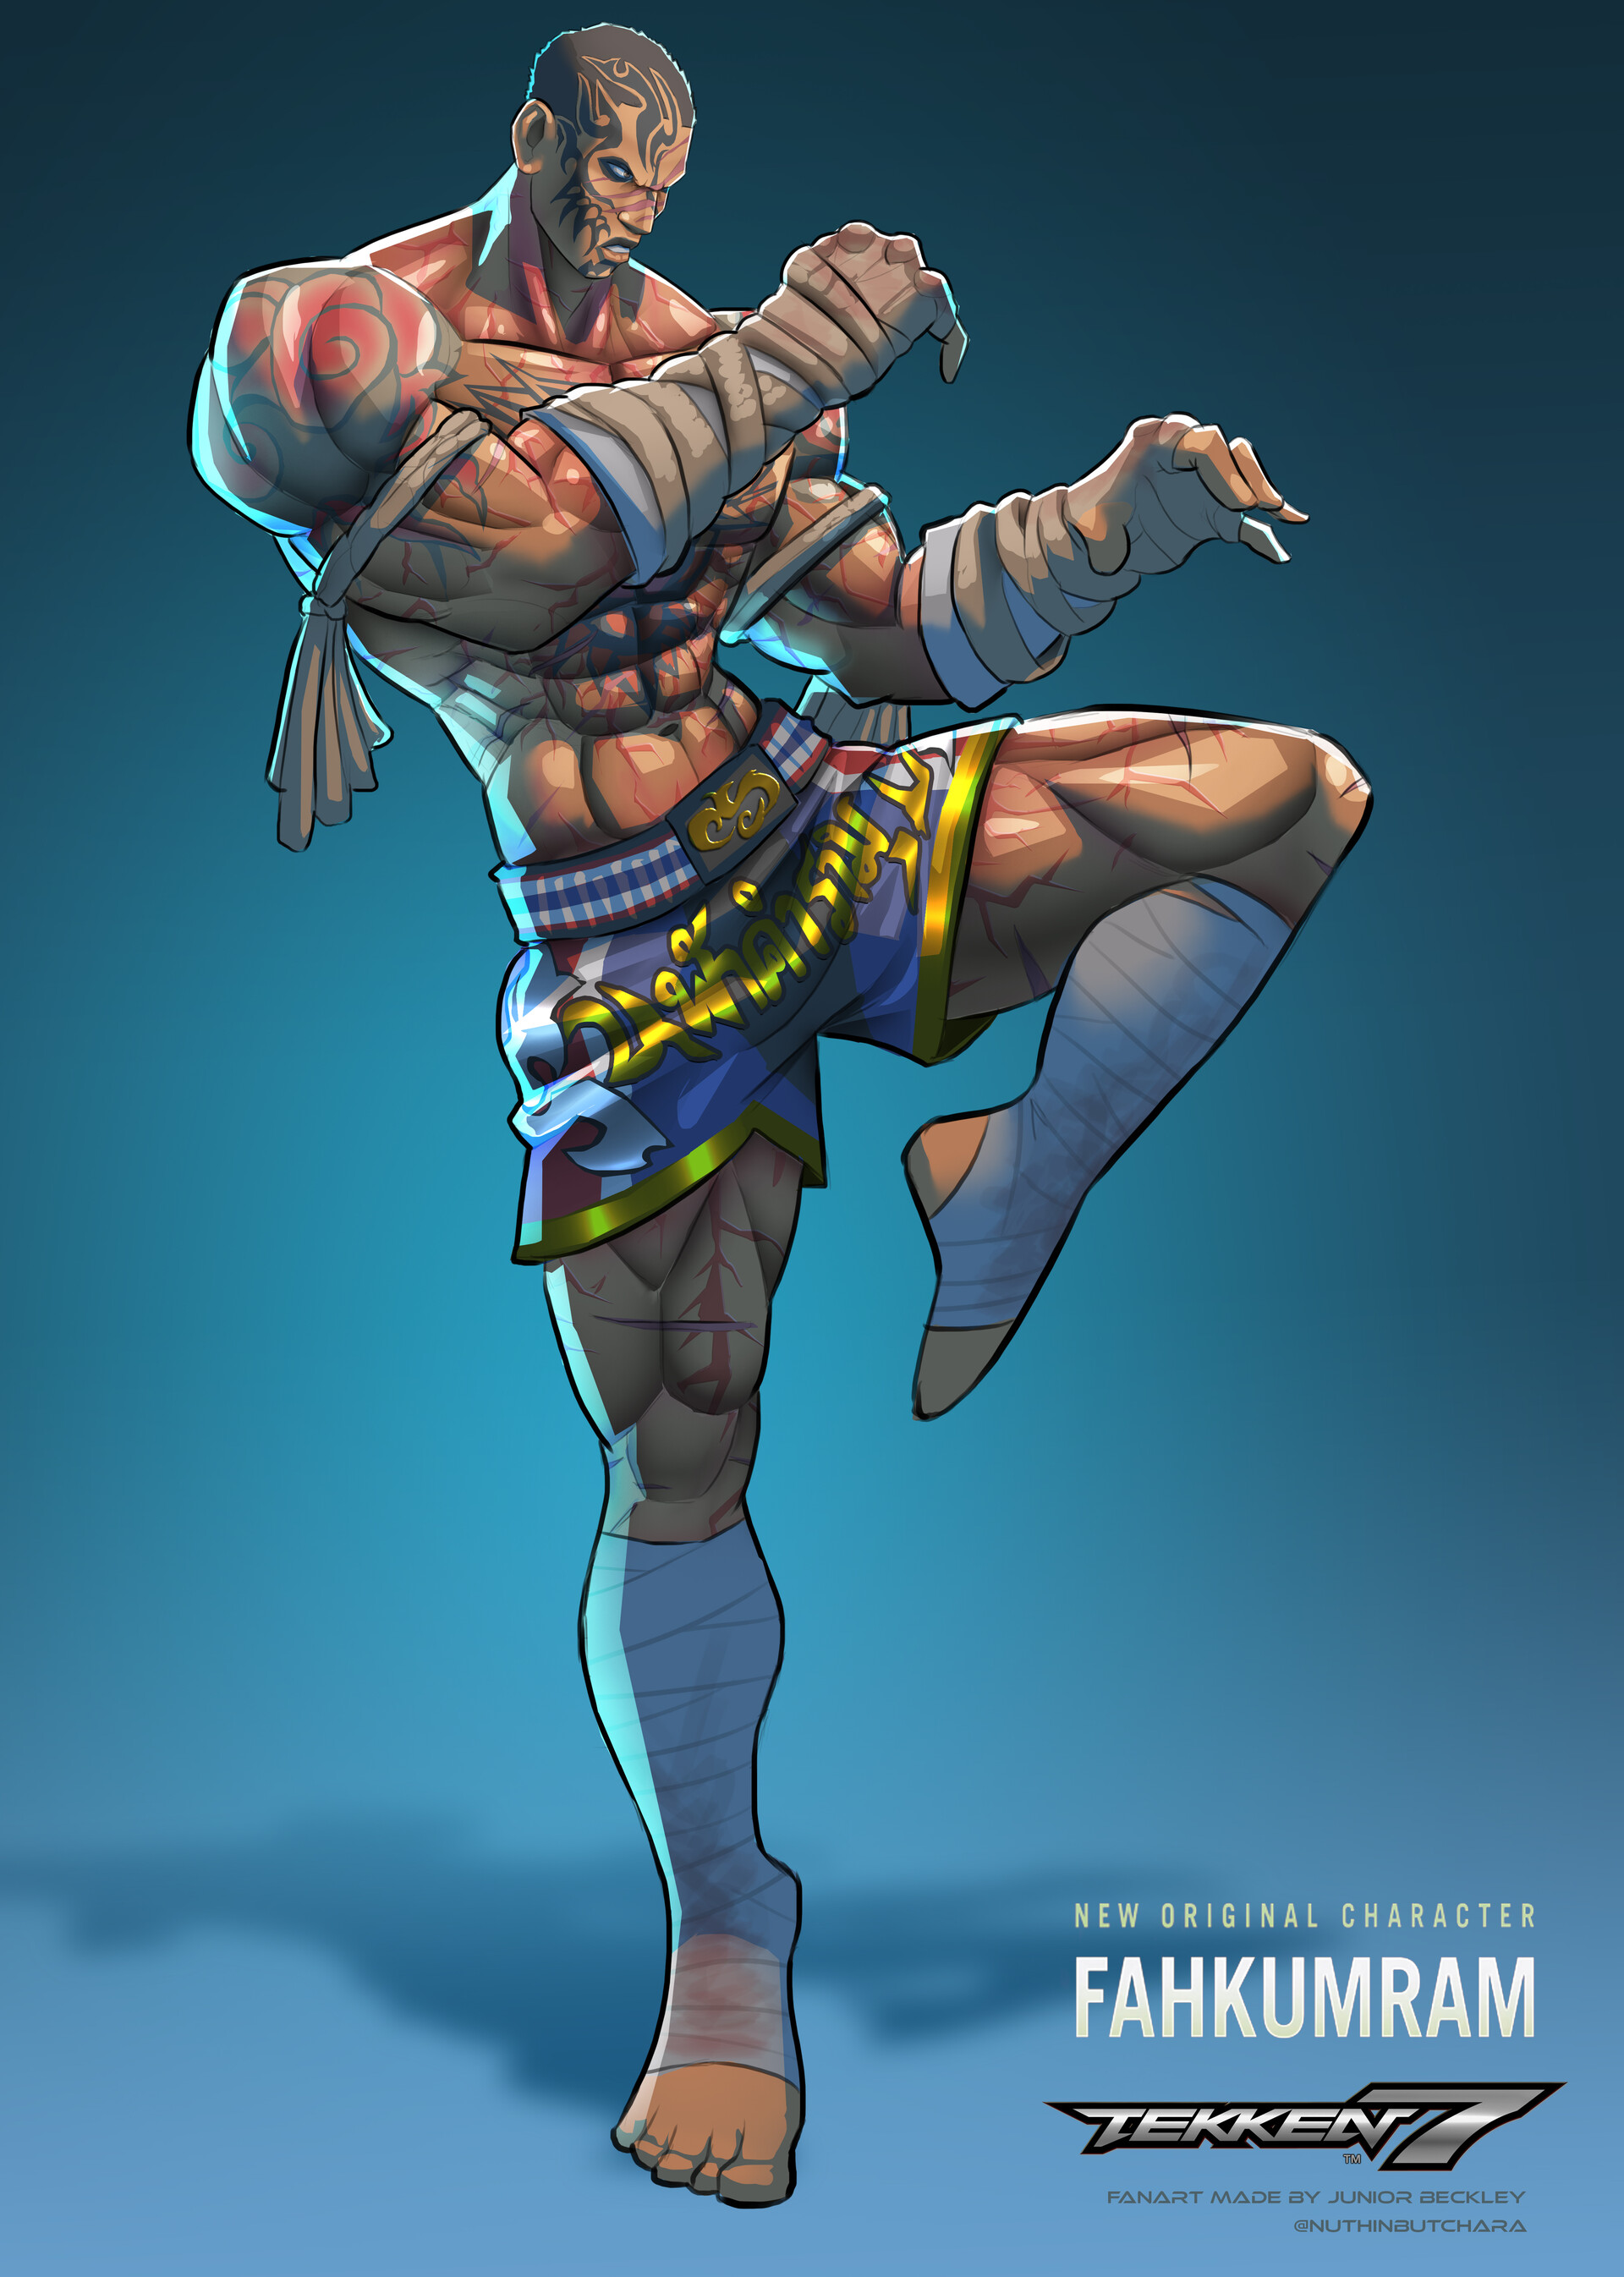 Artstation Tekken 7 Fahkumram Fanart Junior Beckley